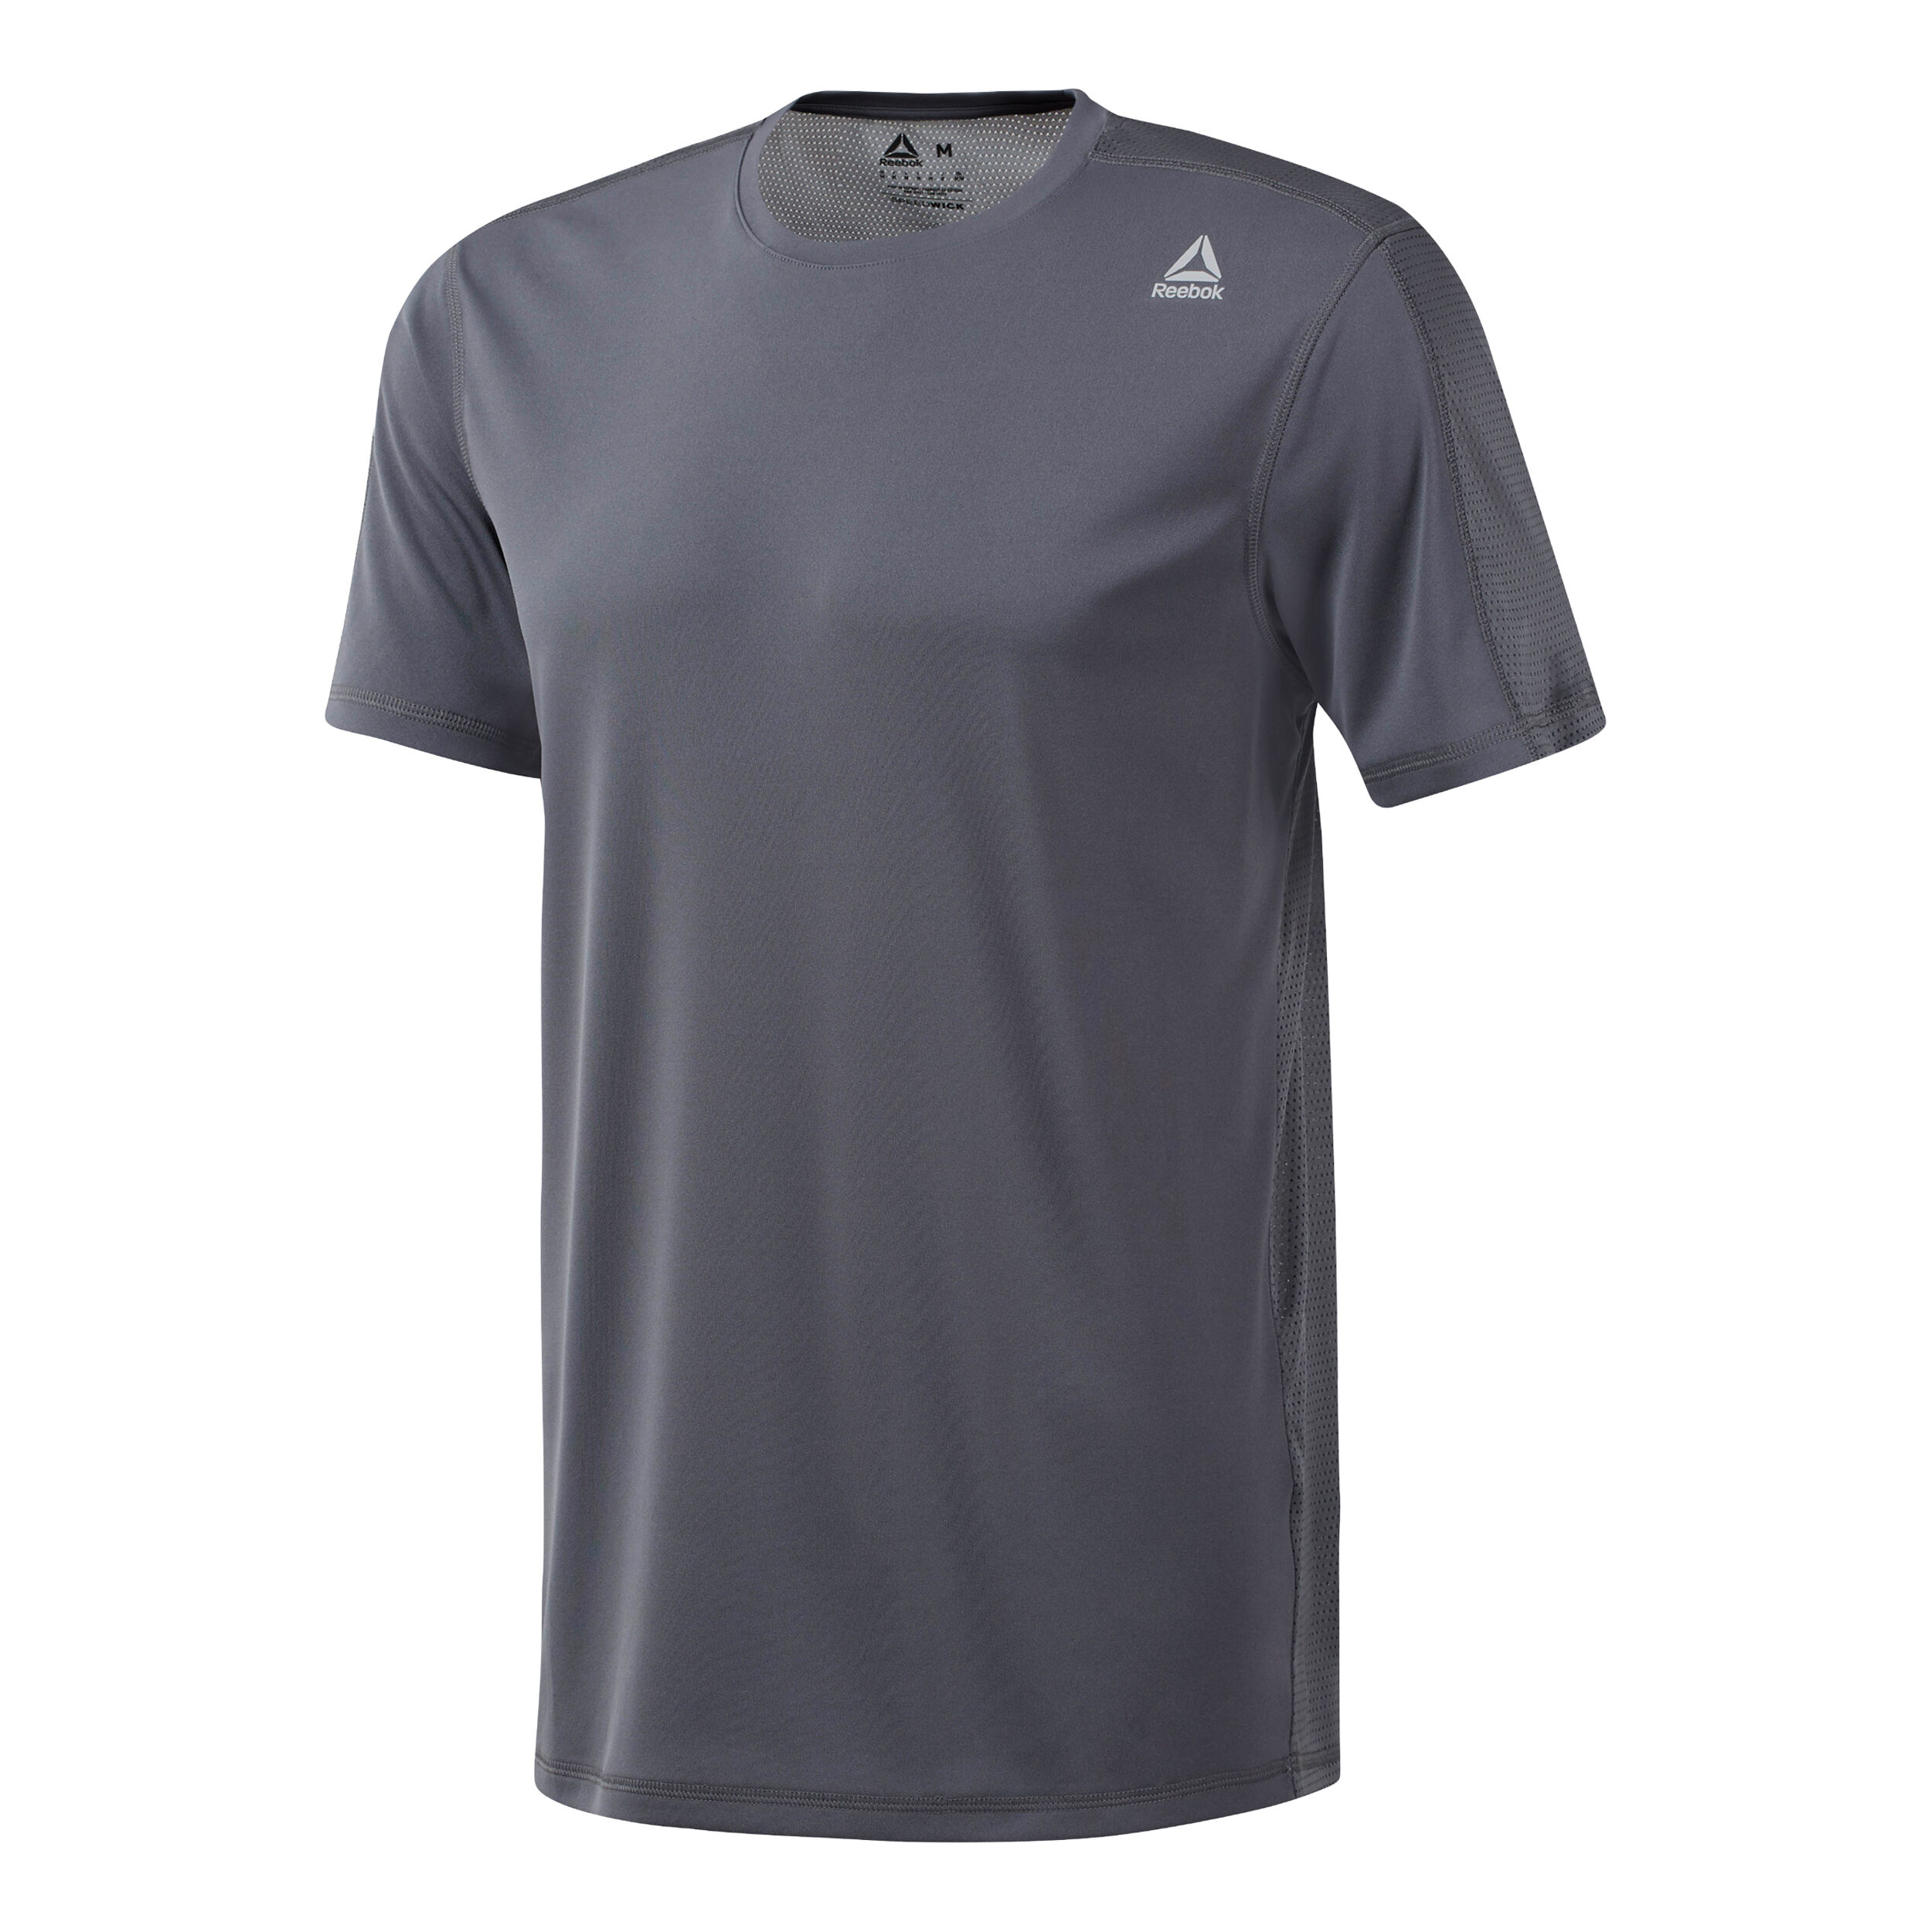 Reebok Workout Regular Tech T Shirt Herren Grau, Schwarz